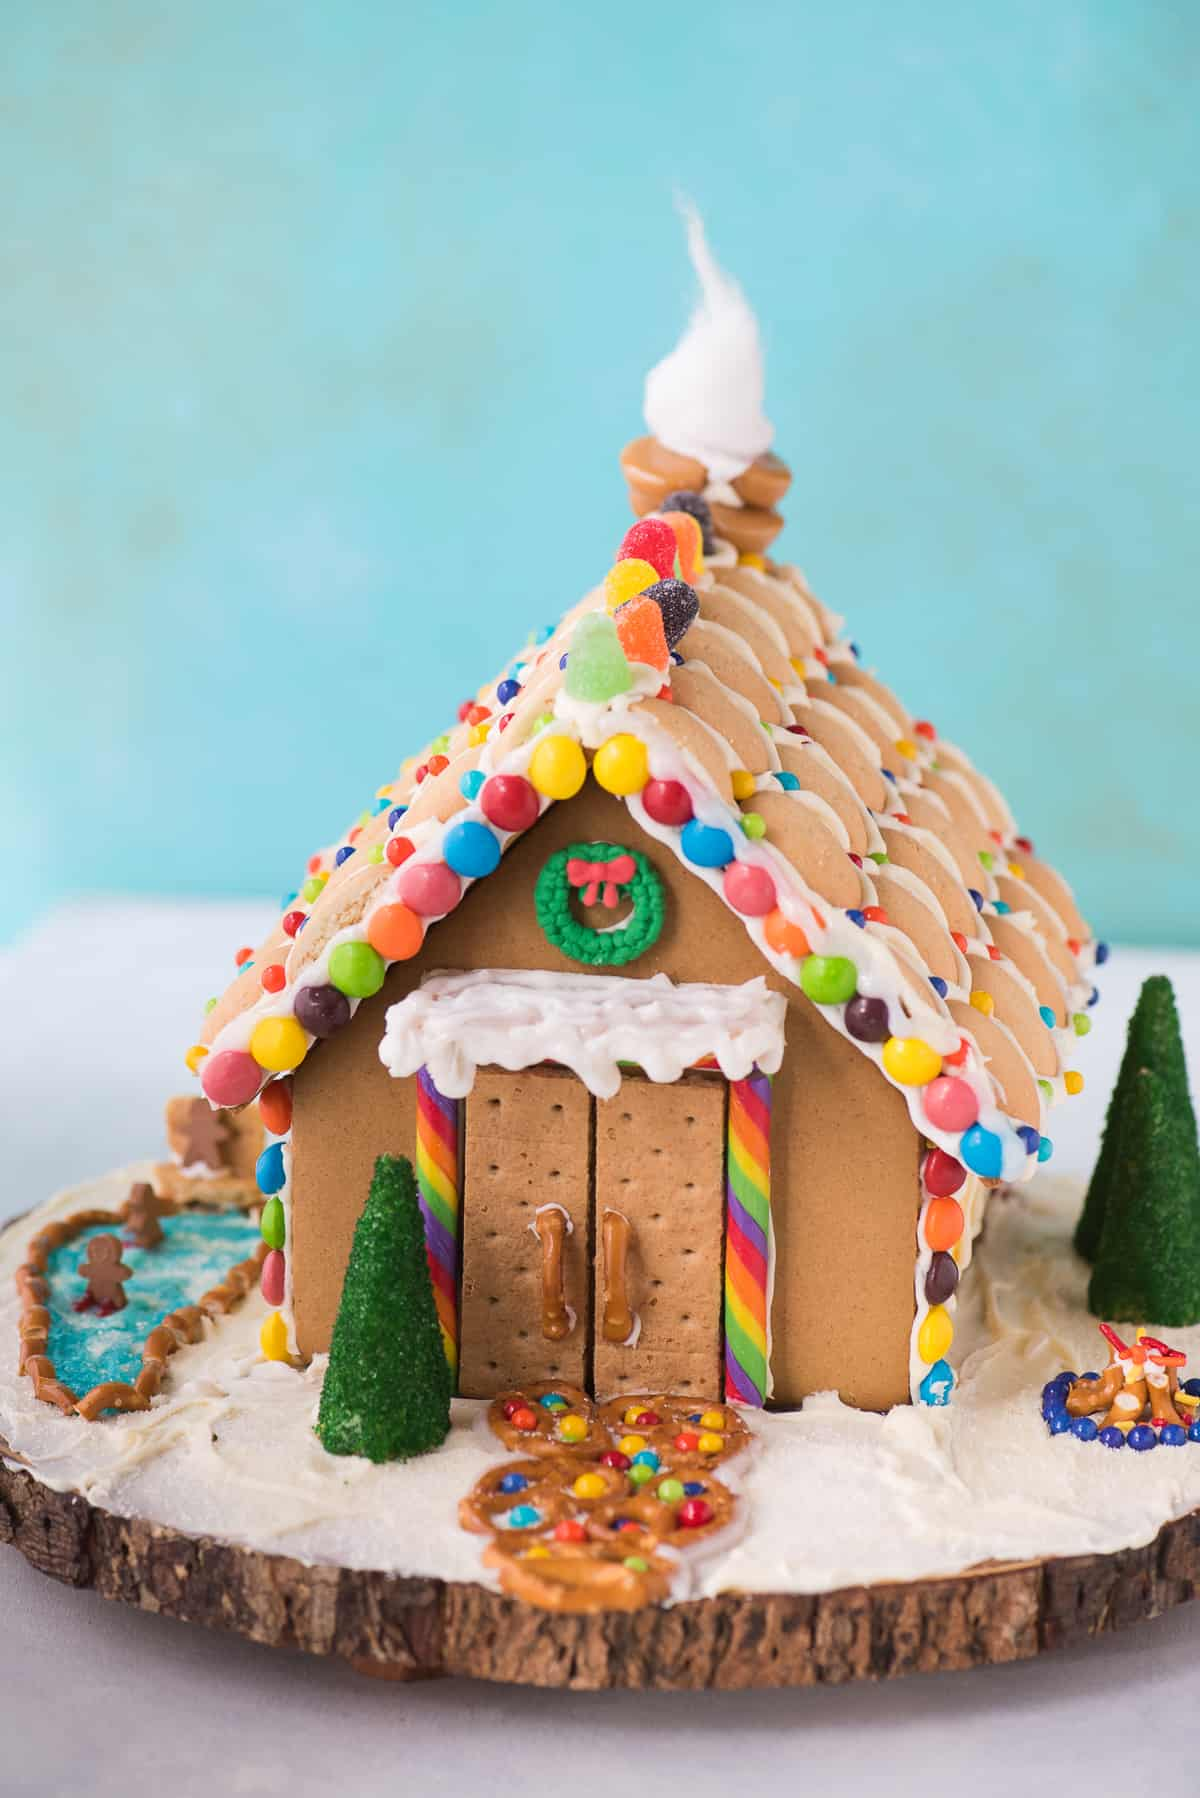 Holiday gingerbread house the first year get some inspiration for your holiday gingerbread house decorating with our gingerbread house tutorial and video solutioingenieria Images